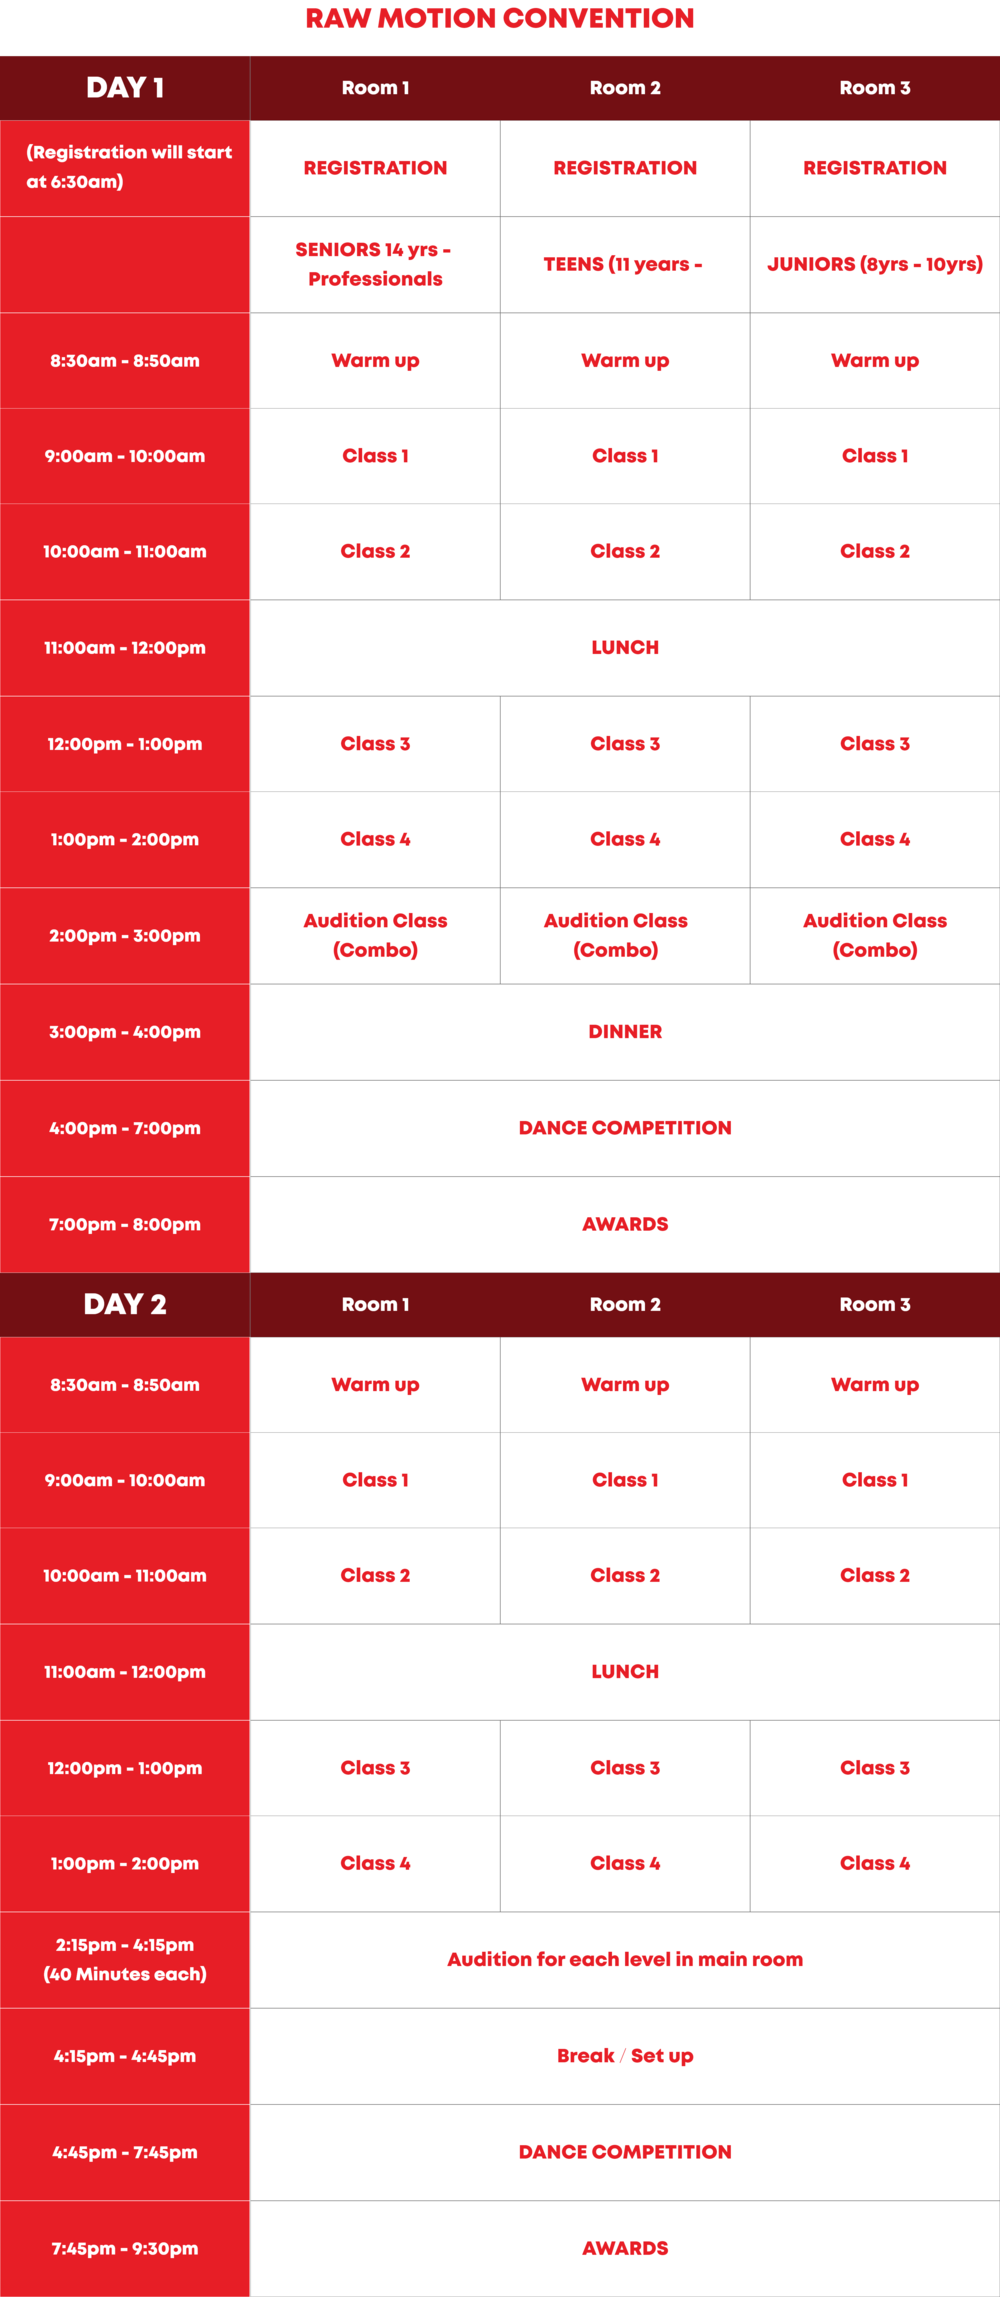 RAW Motion Convention Schedule